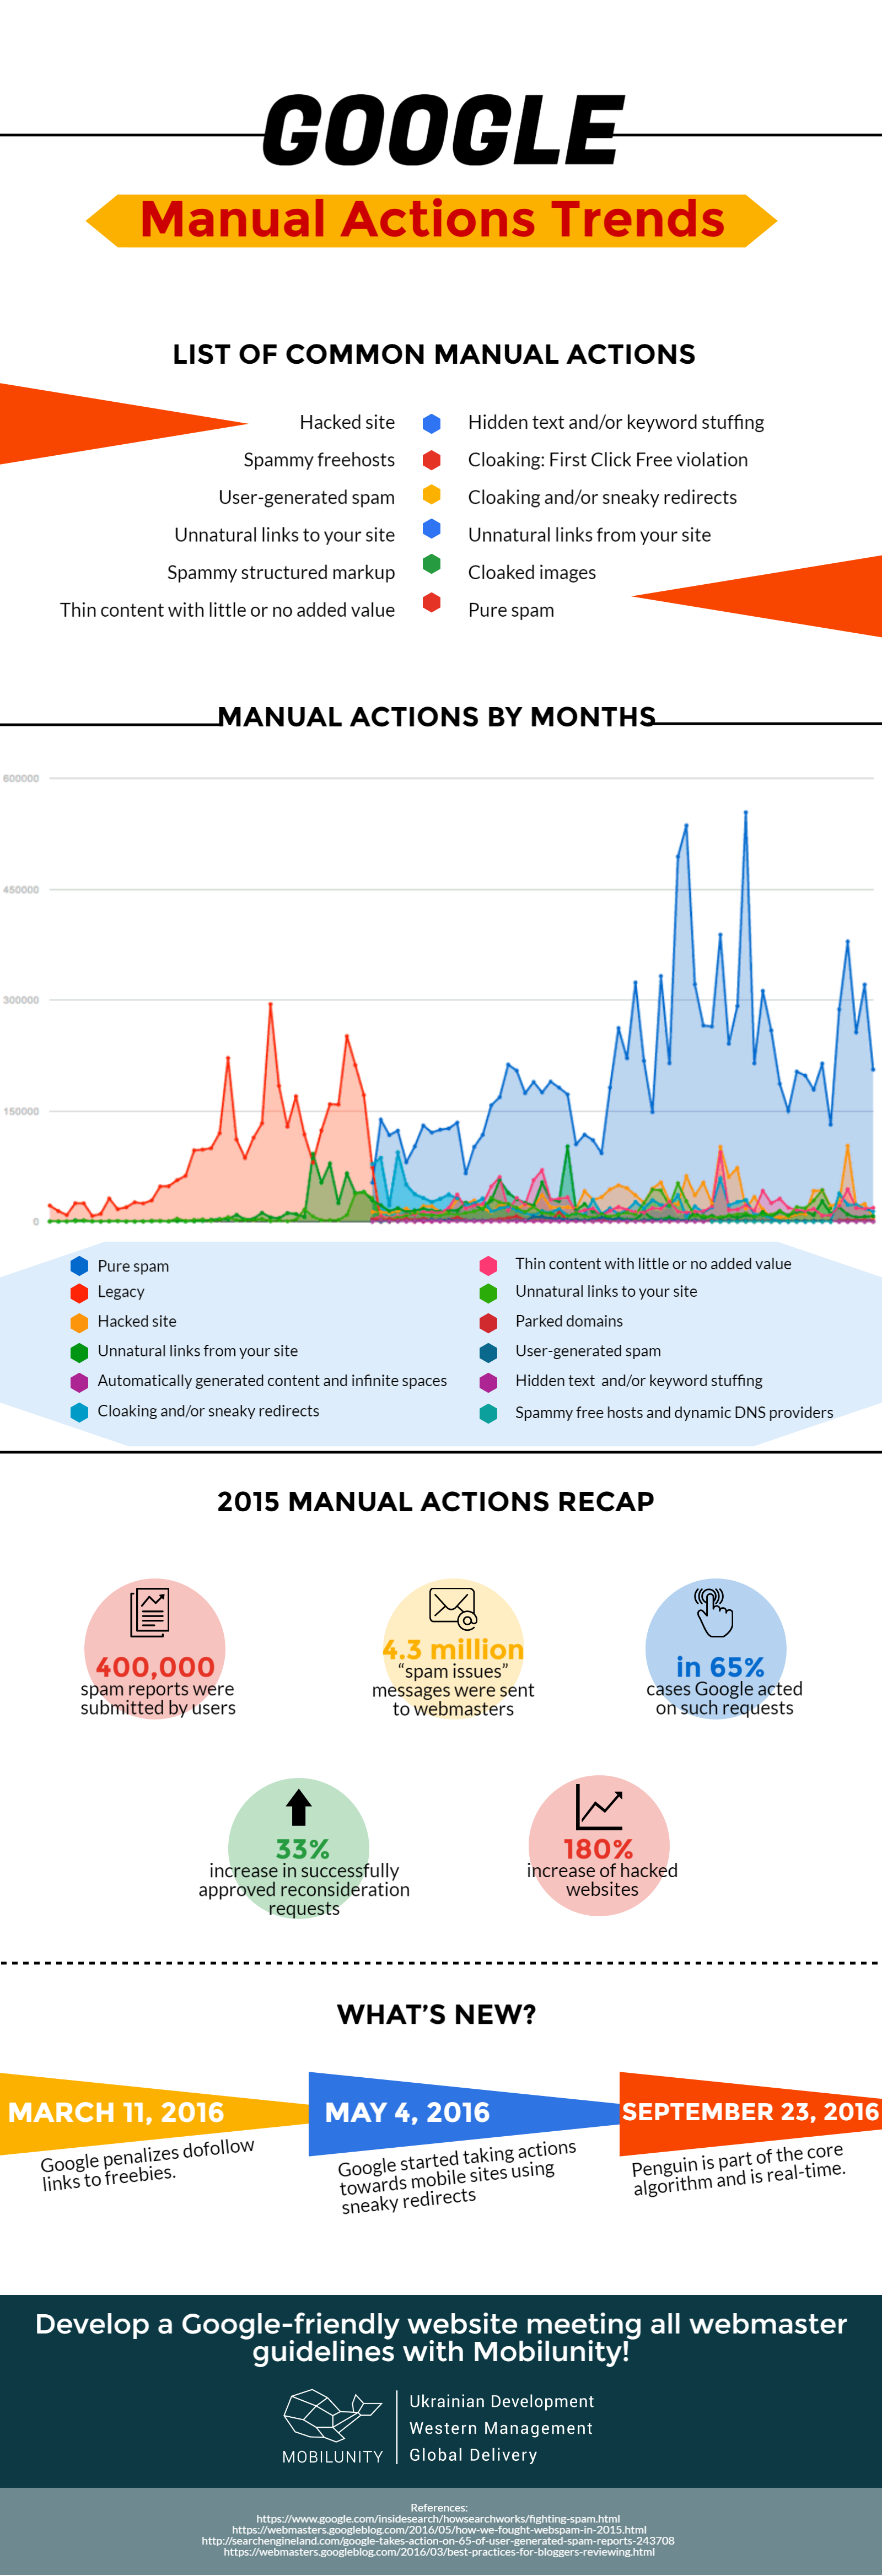 Google Manual Actions Trends